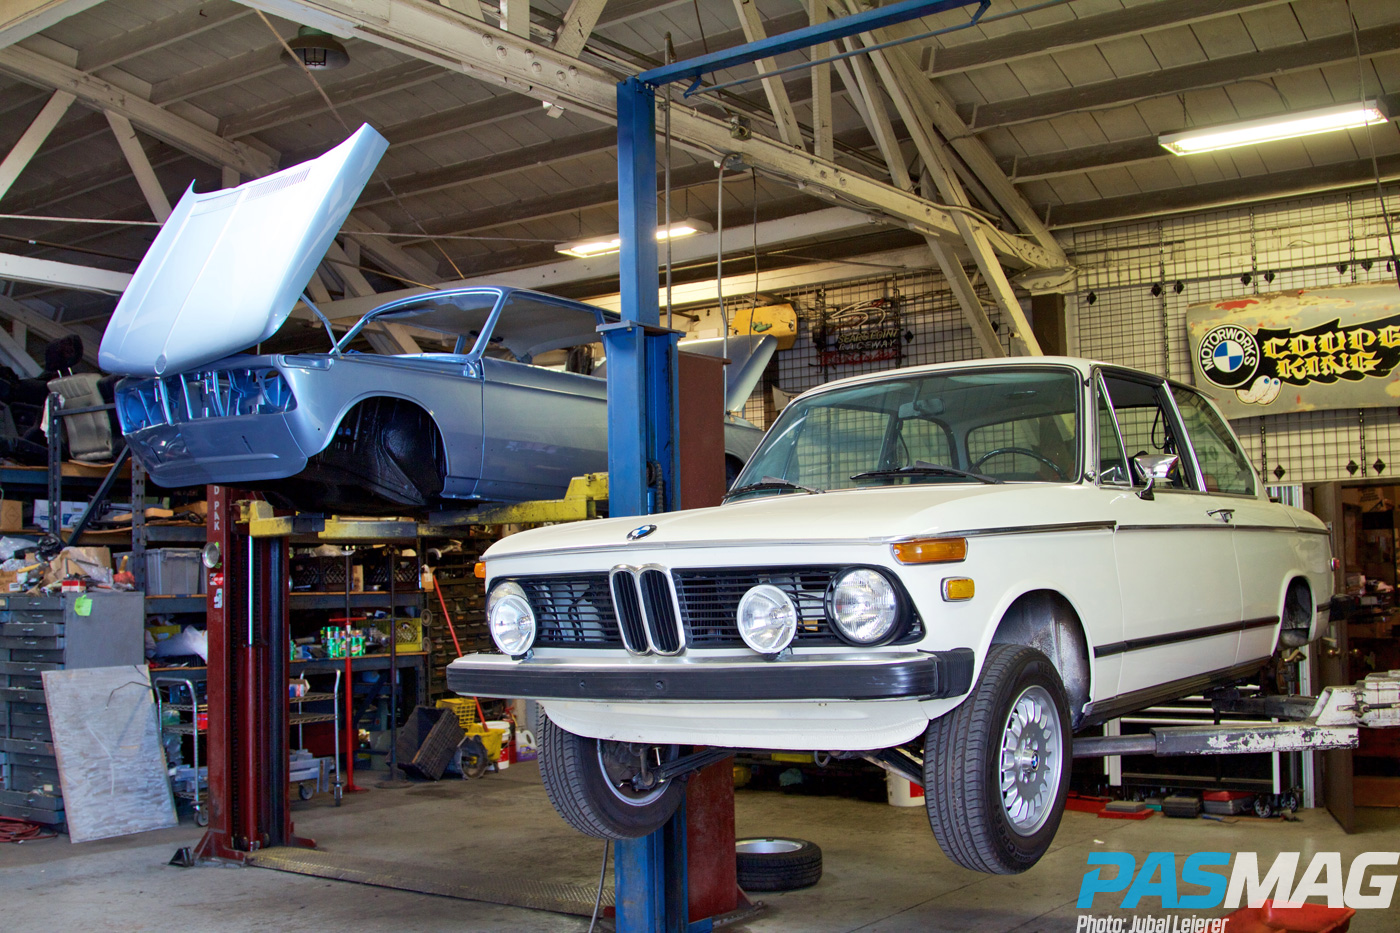 Aught Two: Clarion Builds' Iconic Restoration - 1974 BMW 2002 (Photo by Jubal Leierer)